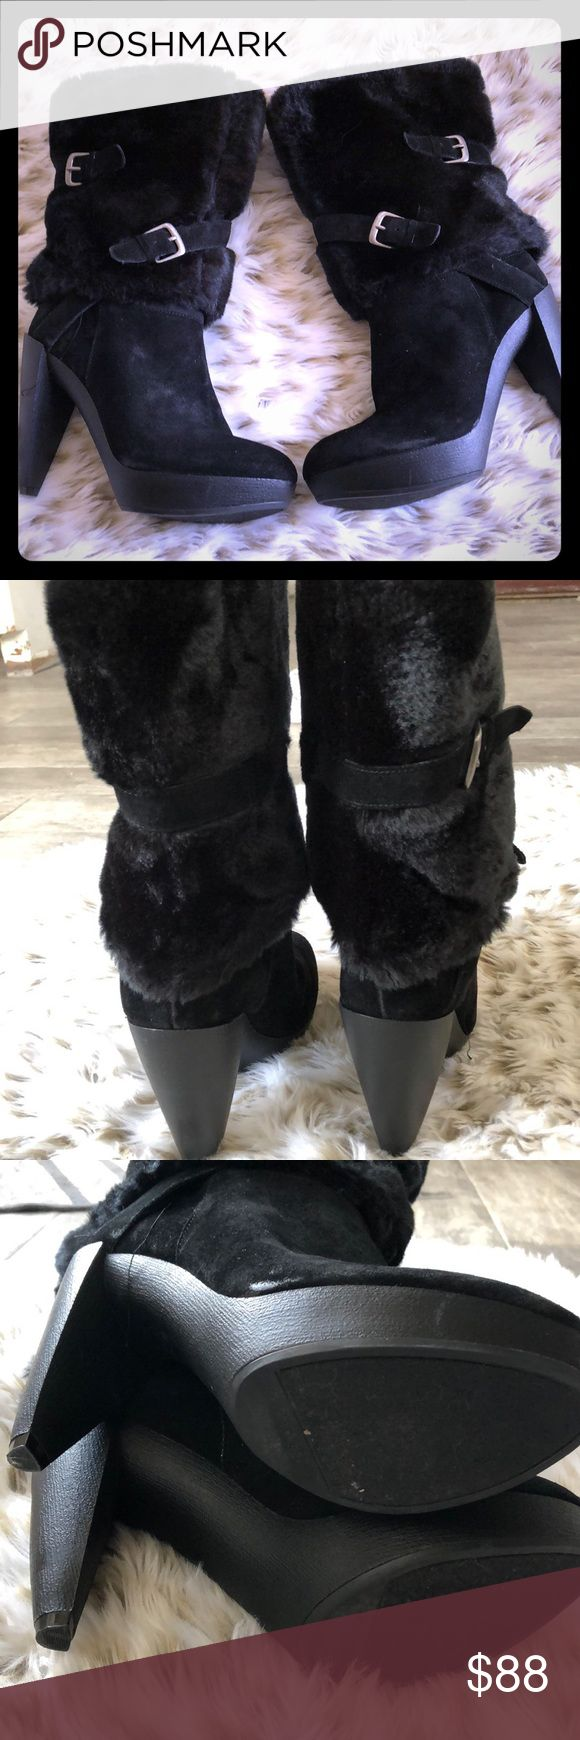 Black Nine West high heeled boots Thee winter boots are like new! Only worn once to a wedding. Gorgeous suede leather platforms. Faux fur around ankle and calf with buckle detail! Few scuffs just from being out of box.  Great condition! Nine West Shoes Heeled Boots